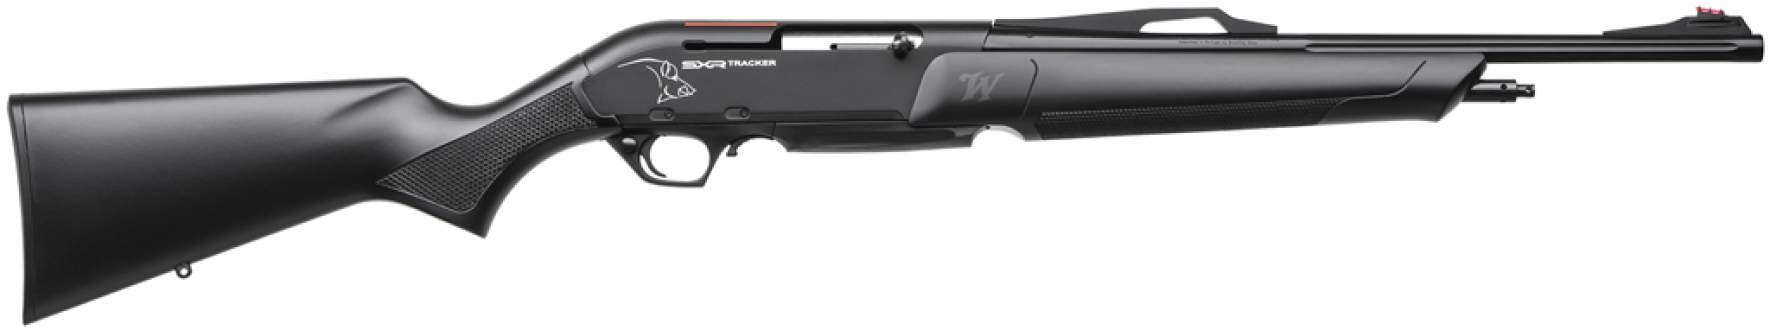 Карабин Winchester SXR Black Tracker Fluted кал. 30-06